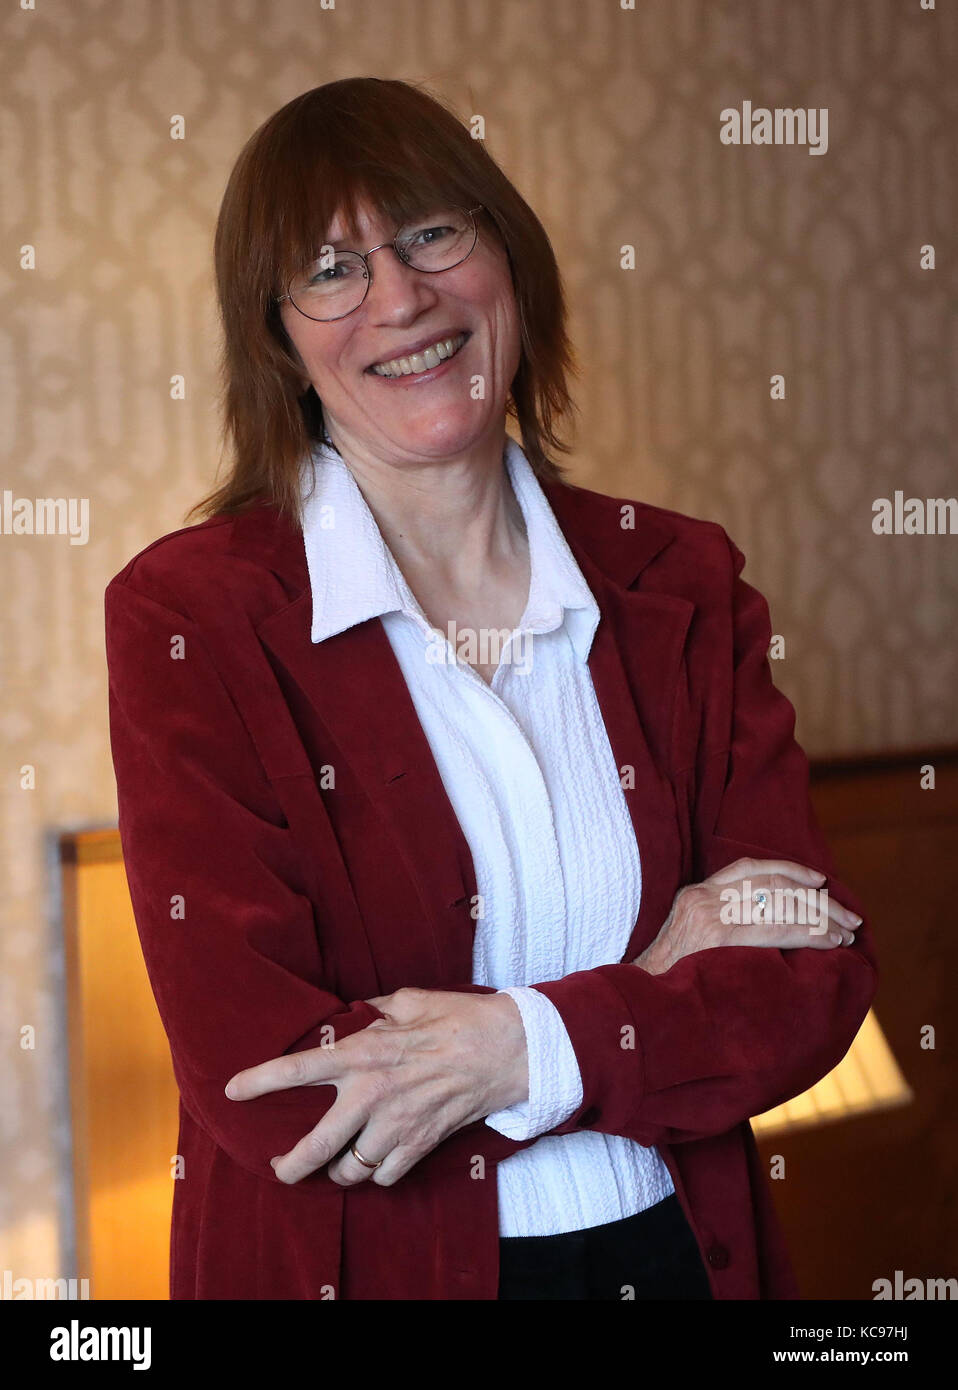 US academic Dr Barb Oakley backstage during the annual Headmasters' and Headmistresses' Conference (HMC) - Stock Image